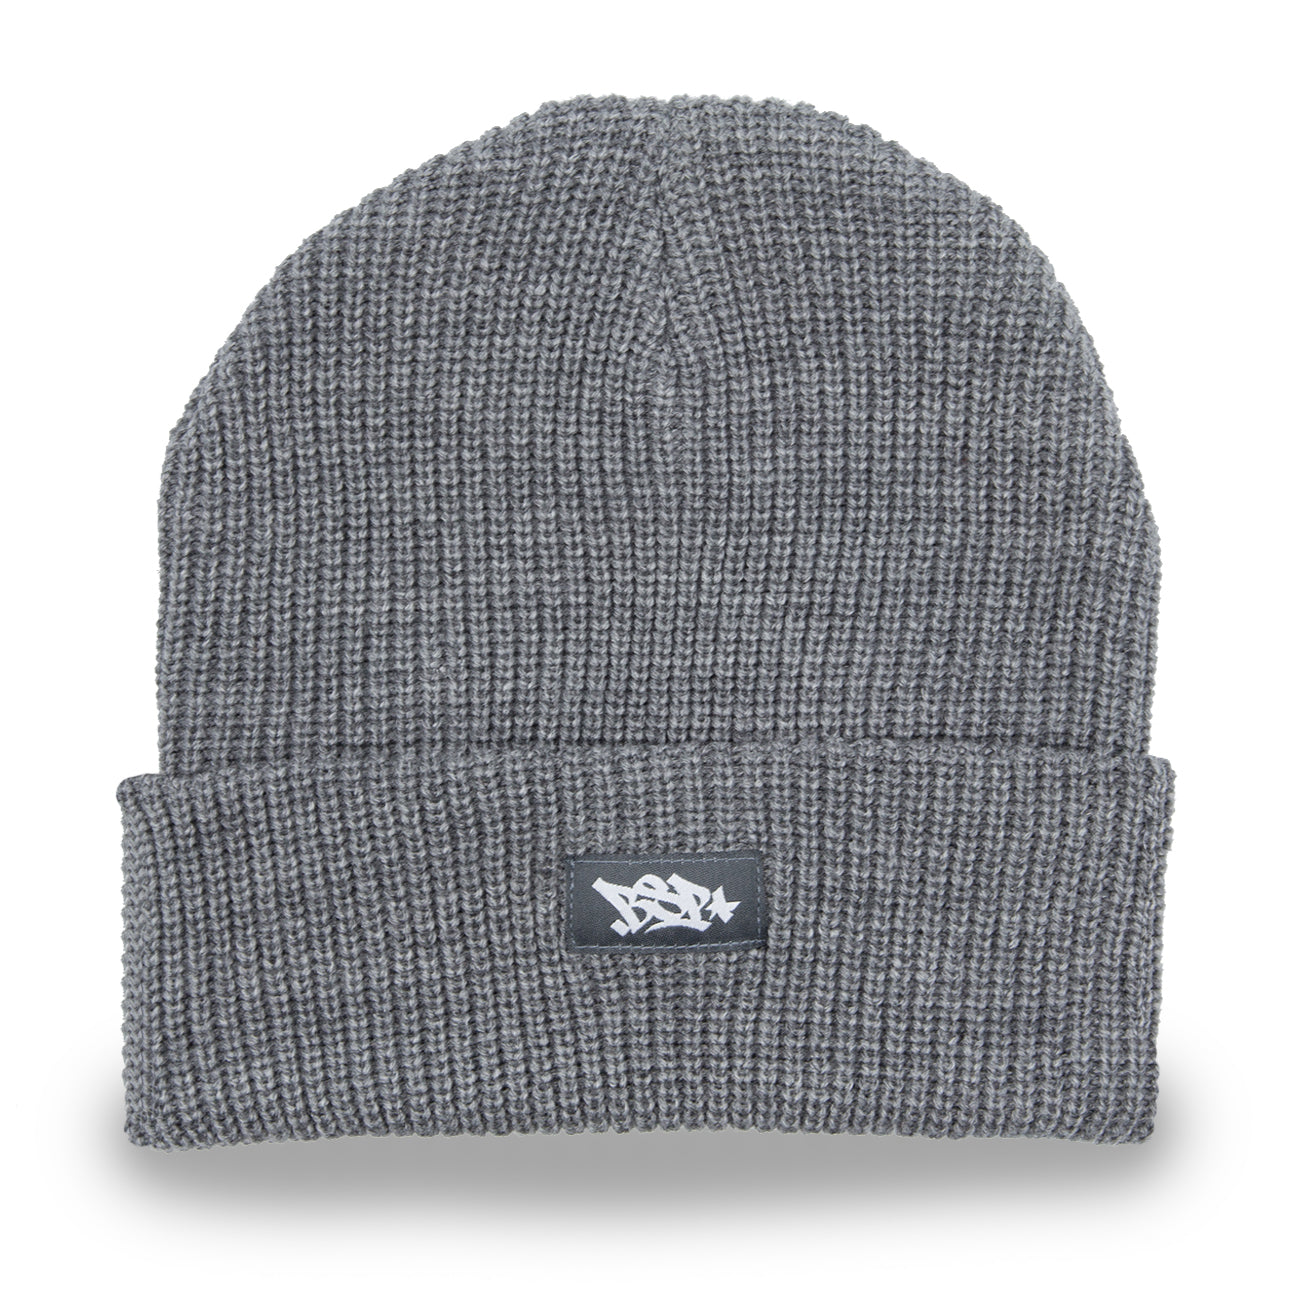 fdb49b9da03f0 Elements Beanie - GREY - BSP CLOTHING